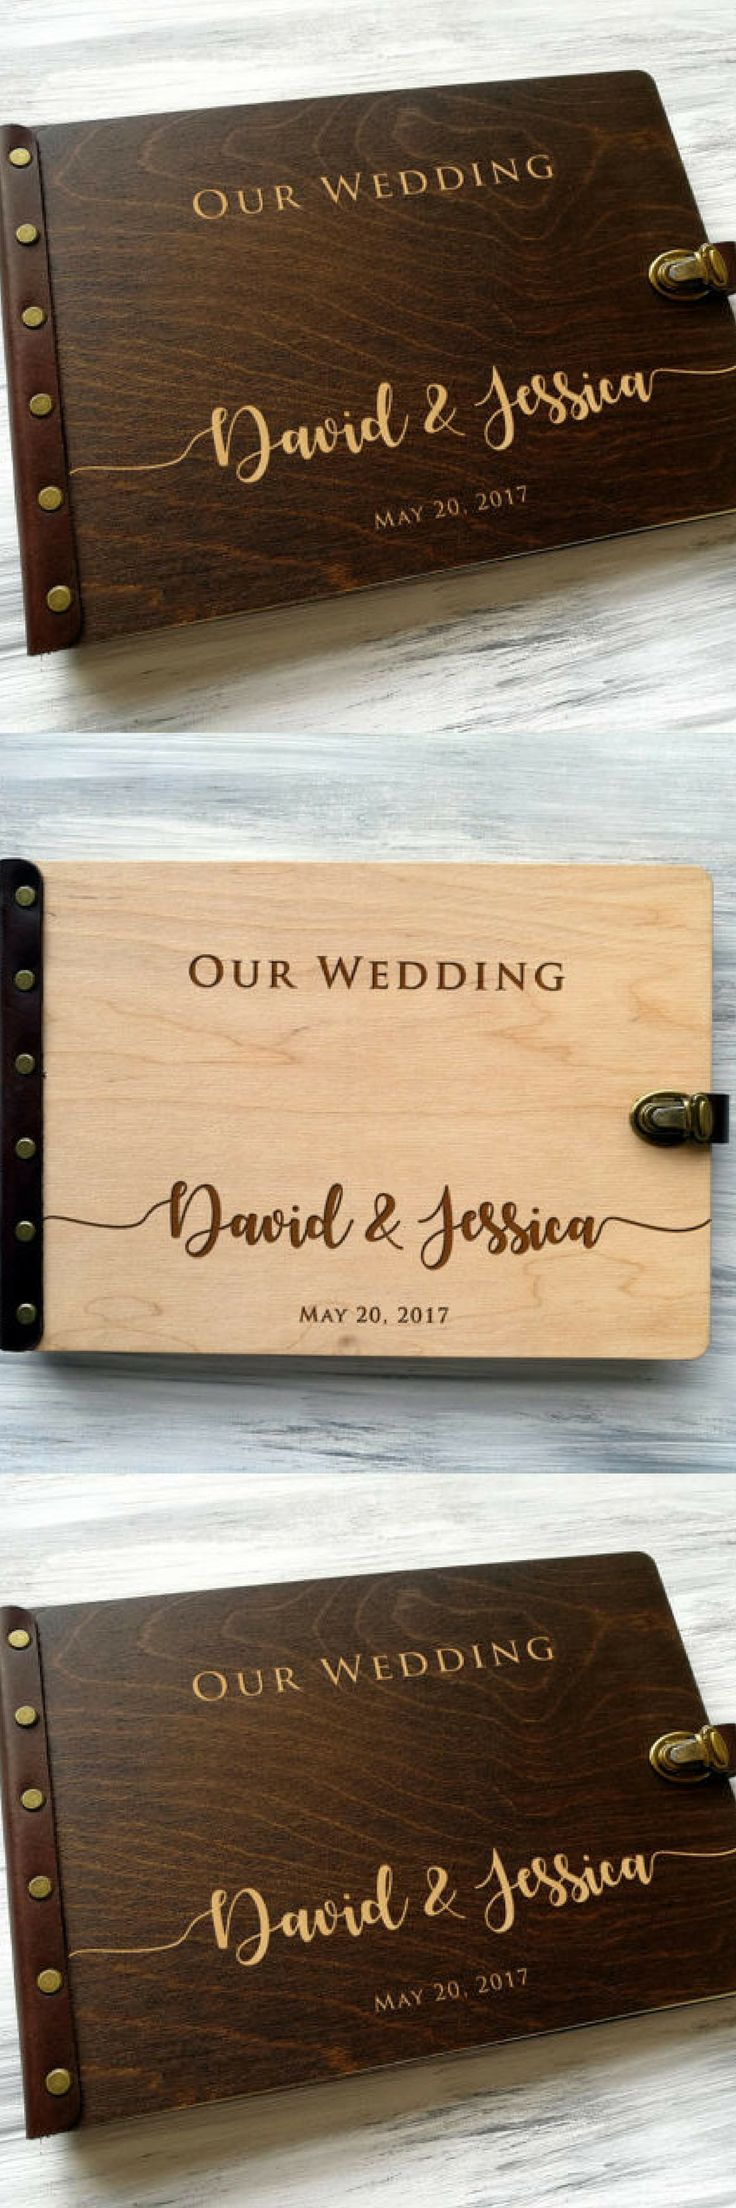 It's a beautiful Wedding Photo Album made of wood and leather that will  accurately keep your memories about this special day. And years after  you'll look through it and your memory will fly you back to such a happy  day.  Wedding Photo Album Wood Photo Album Personalized Photo Album Custom  Wedding Album Wooden Photobook Wedding Gift Ideas Gift for Couple. #weddingideas #ad #giftideas